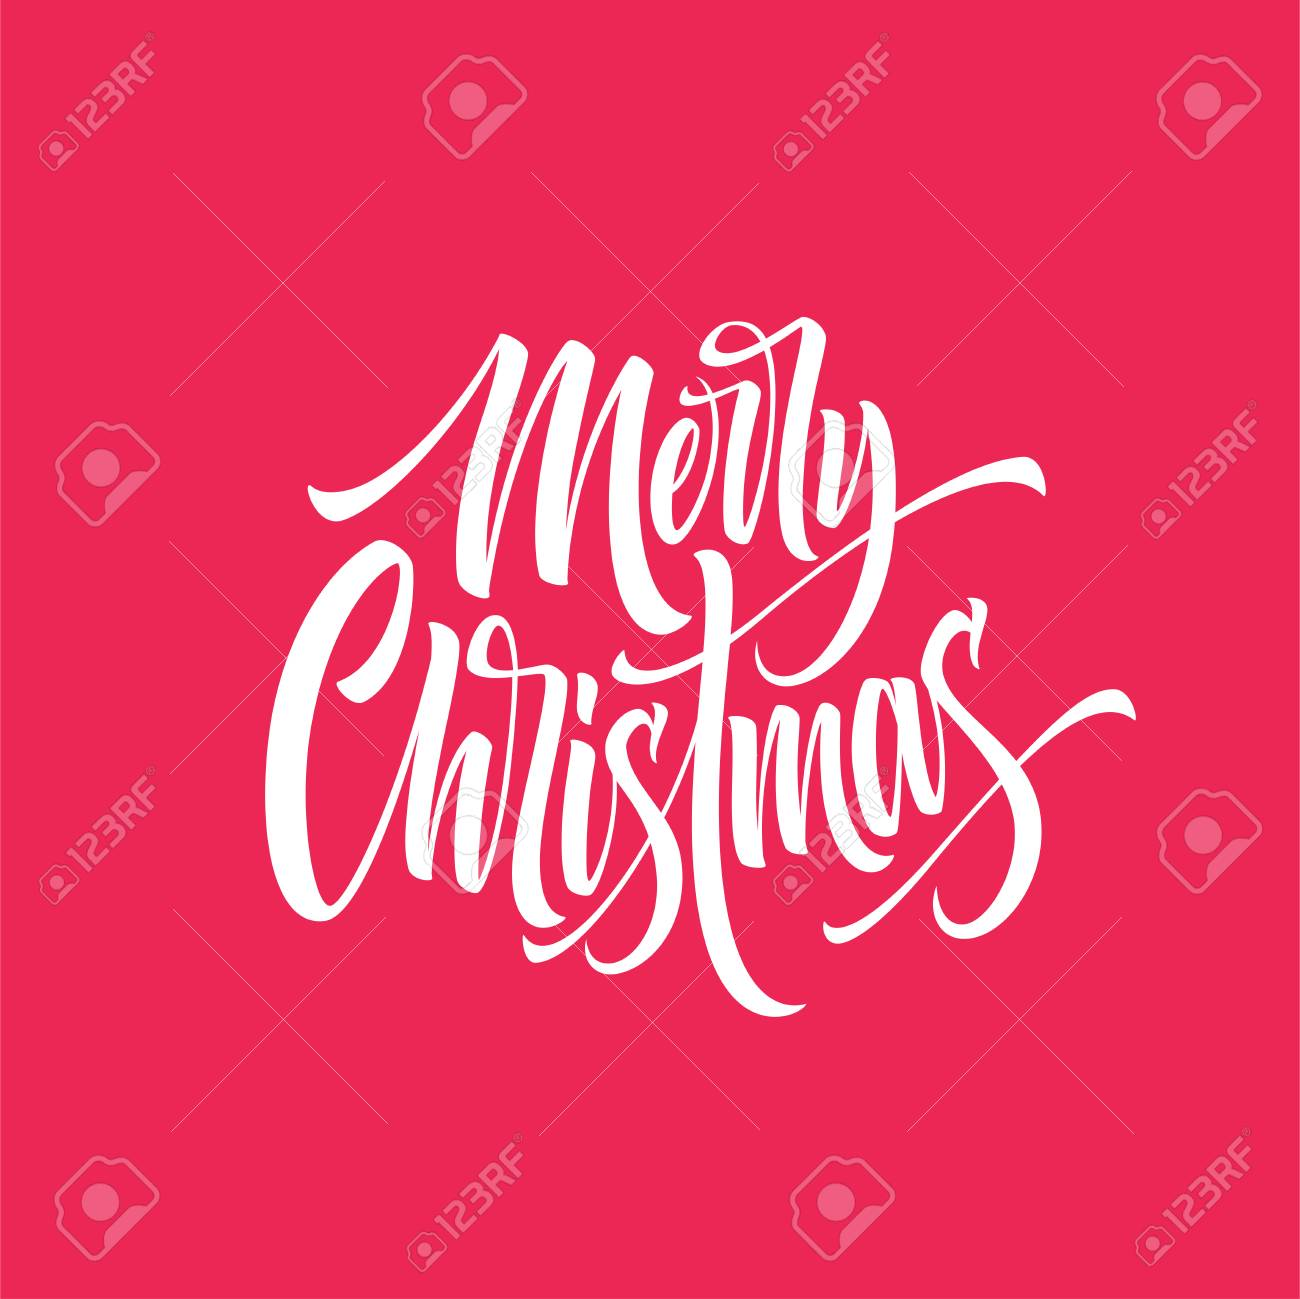 Christmas Lettering.Merry Christmas Hand Drawn Lettering Xmas Cursive Calligraphy